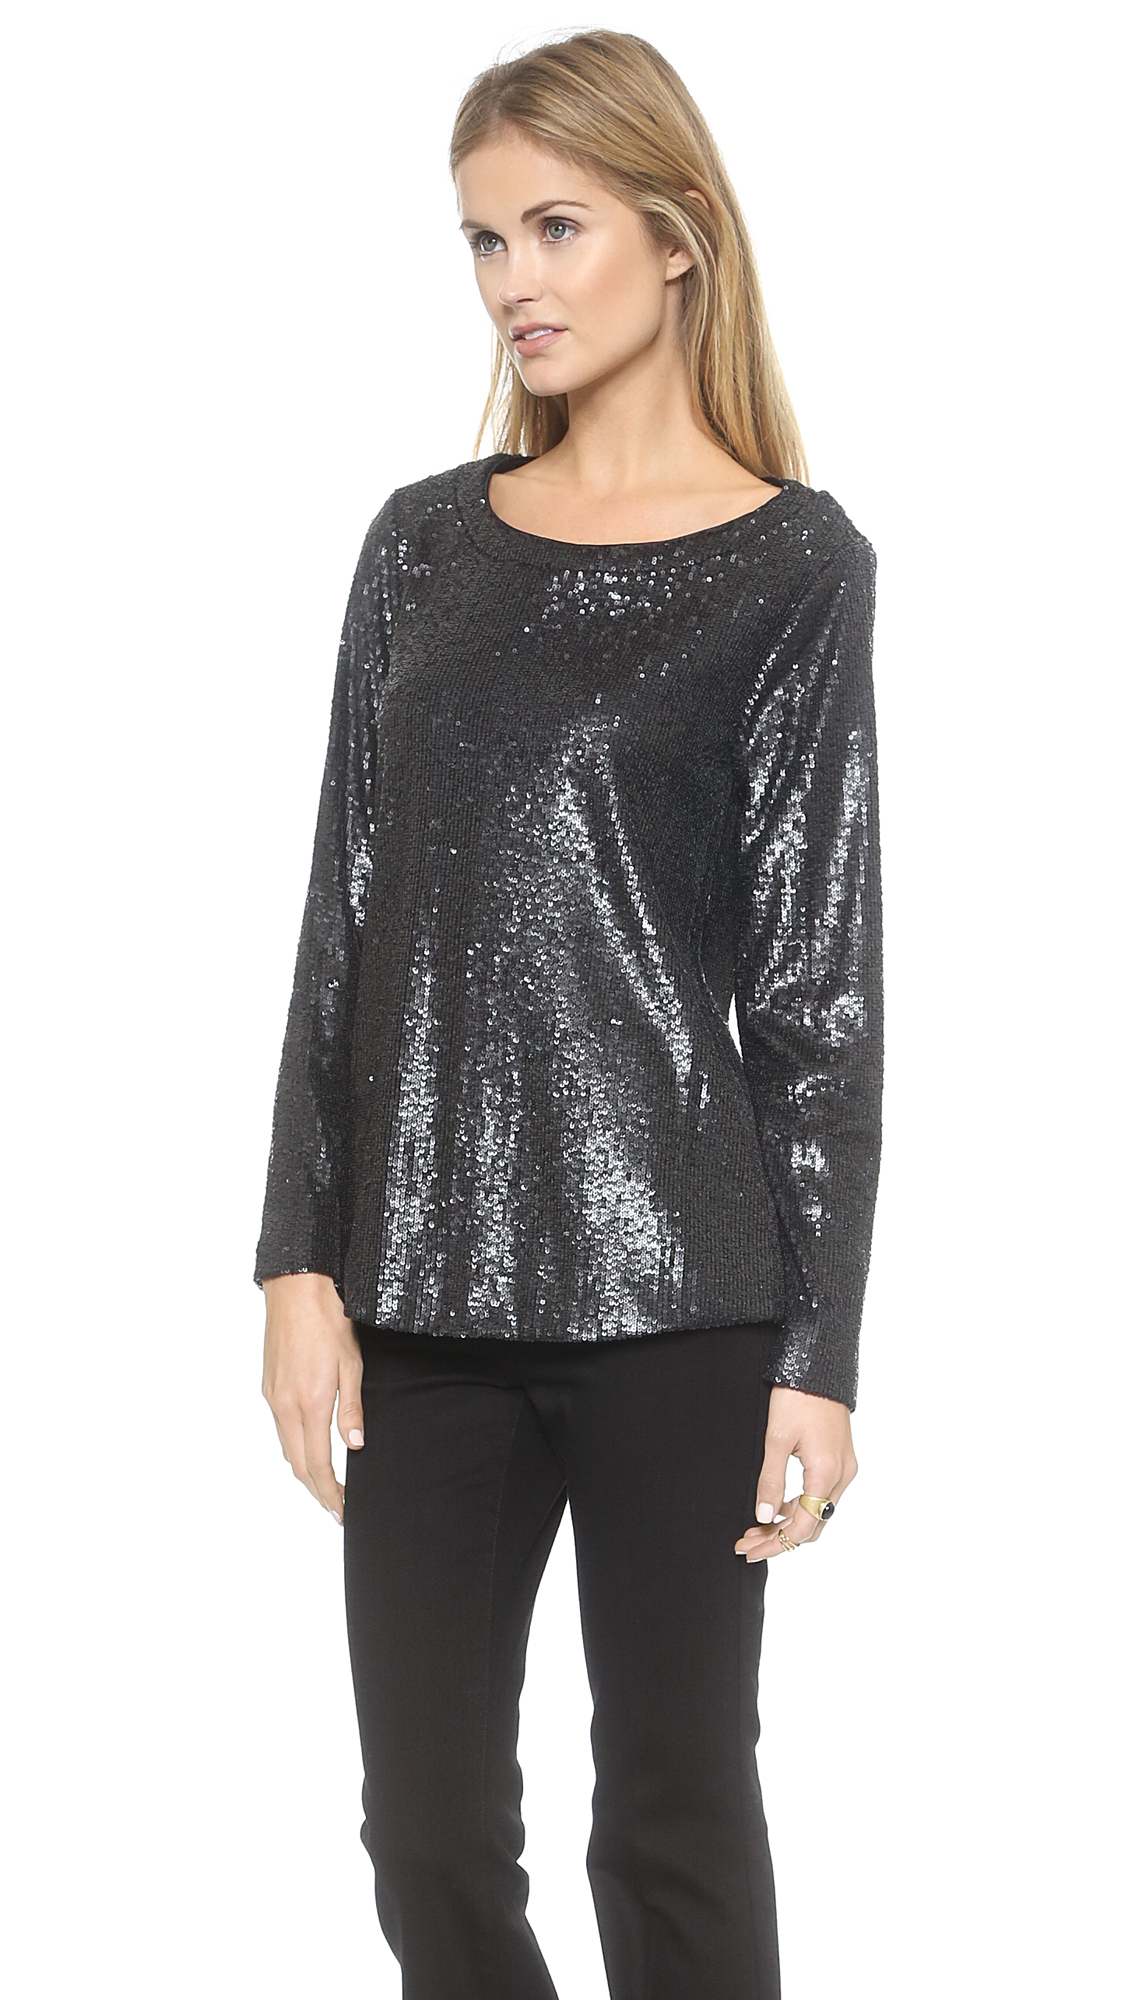 Lulus has an amazing selection of tops for going out evenings to clubs or parties in juniors sizes. Low prices and free shipping on orders over $ Shop now!